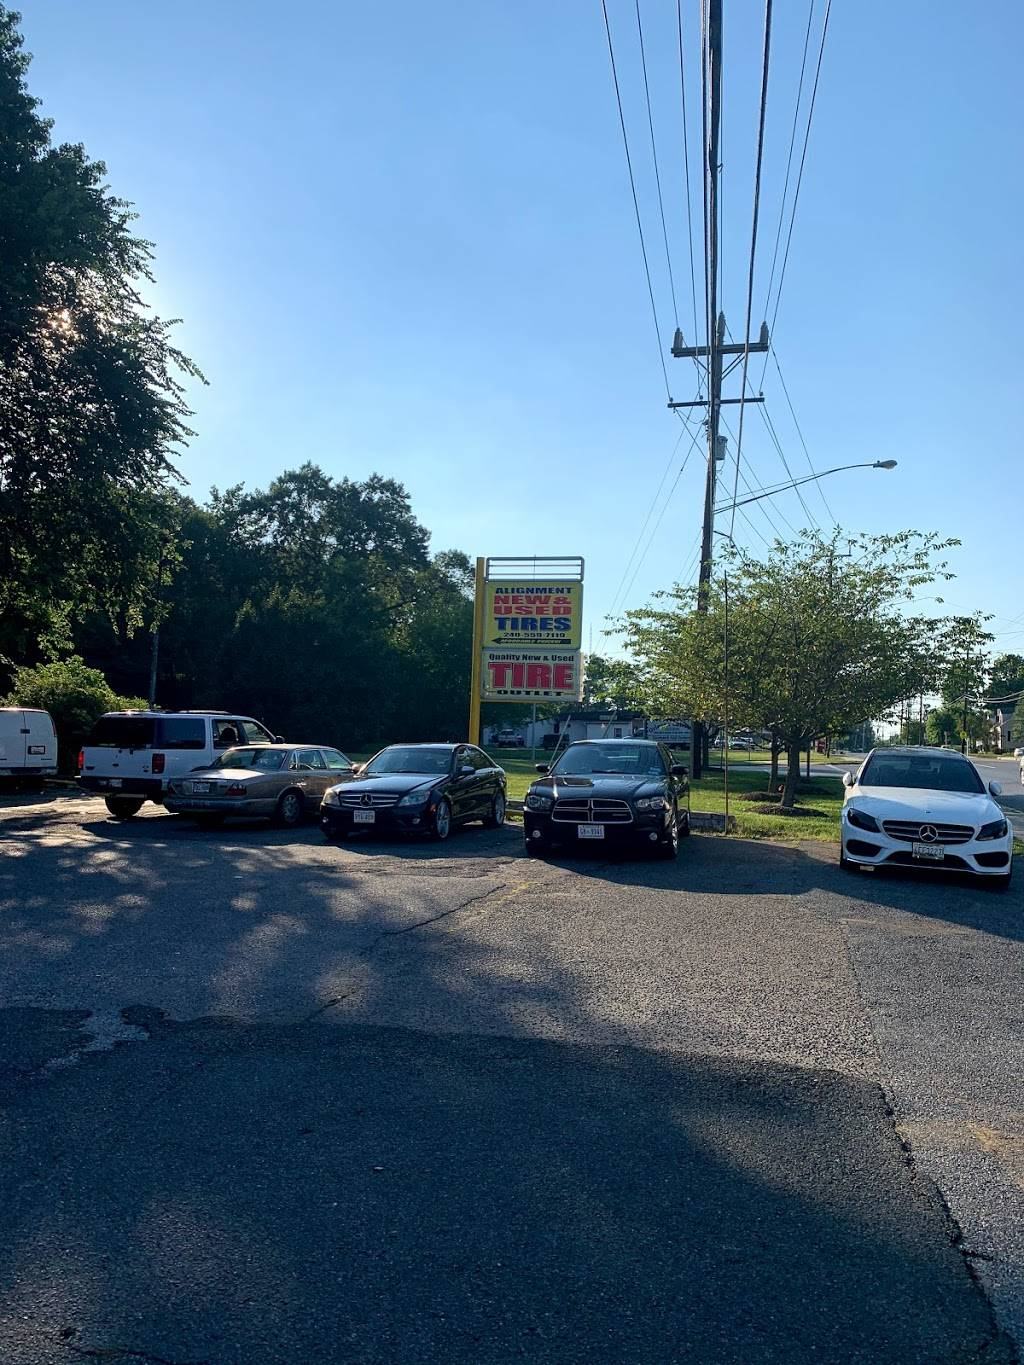 Mostafa Auto Service - car repair  | Photo 4 of 4 | Address: 6711 Suitland Rd, Morningside, MD 20746, USA | Phone: (301) 213-6168